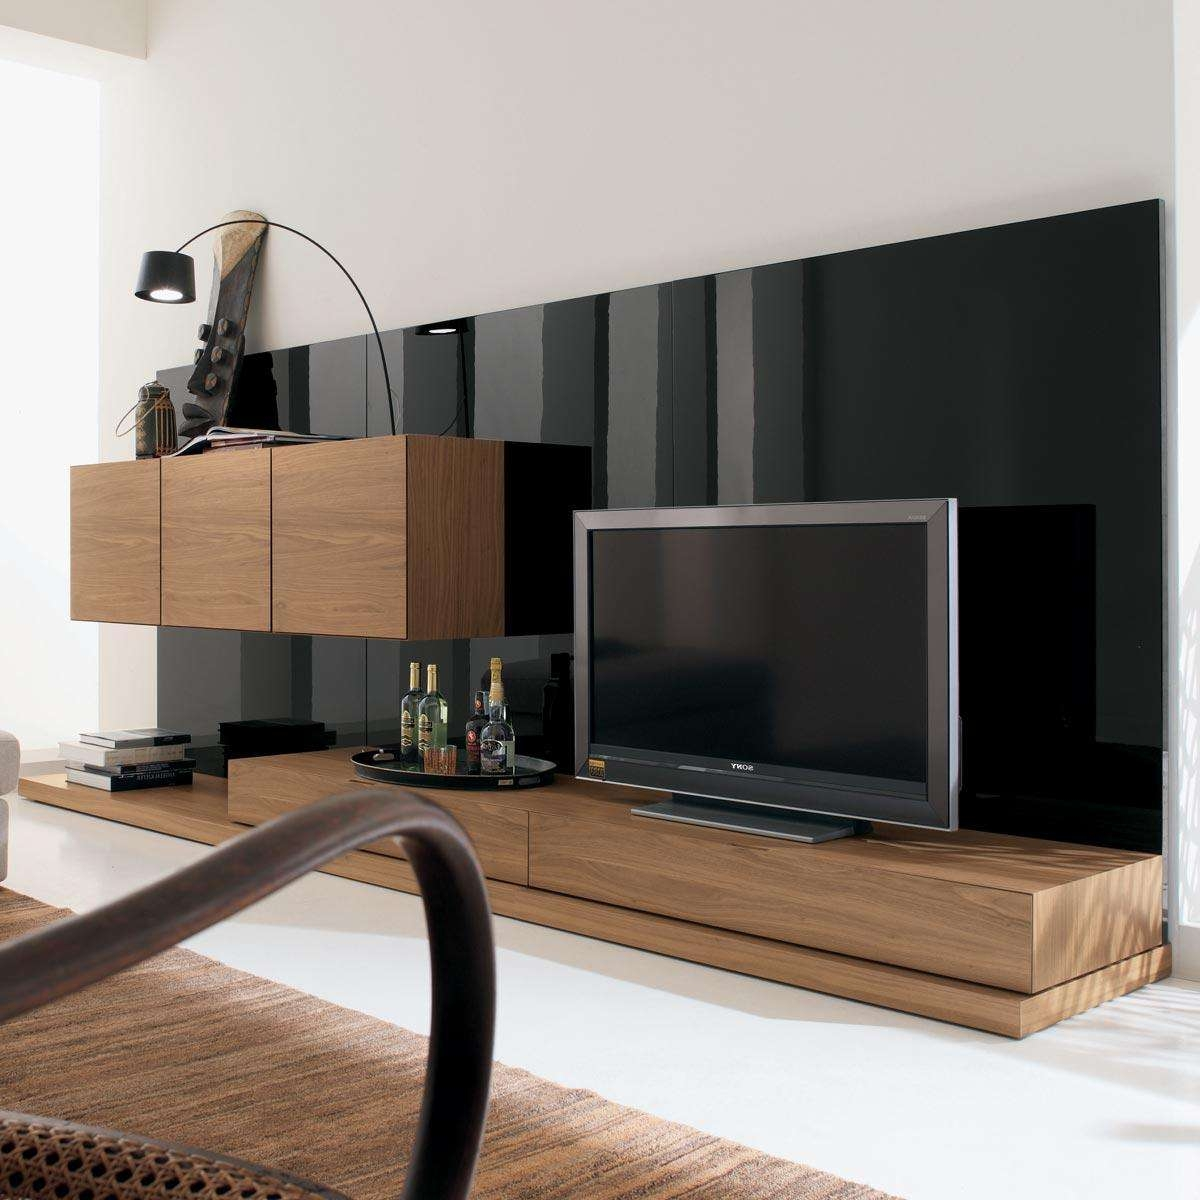 Modern Nature Wood Big Screen Tv Stand Wall Mounted Living Room Throughout Sleek Tv Stands (View 3 of 15)